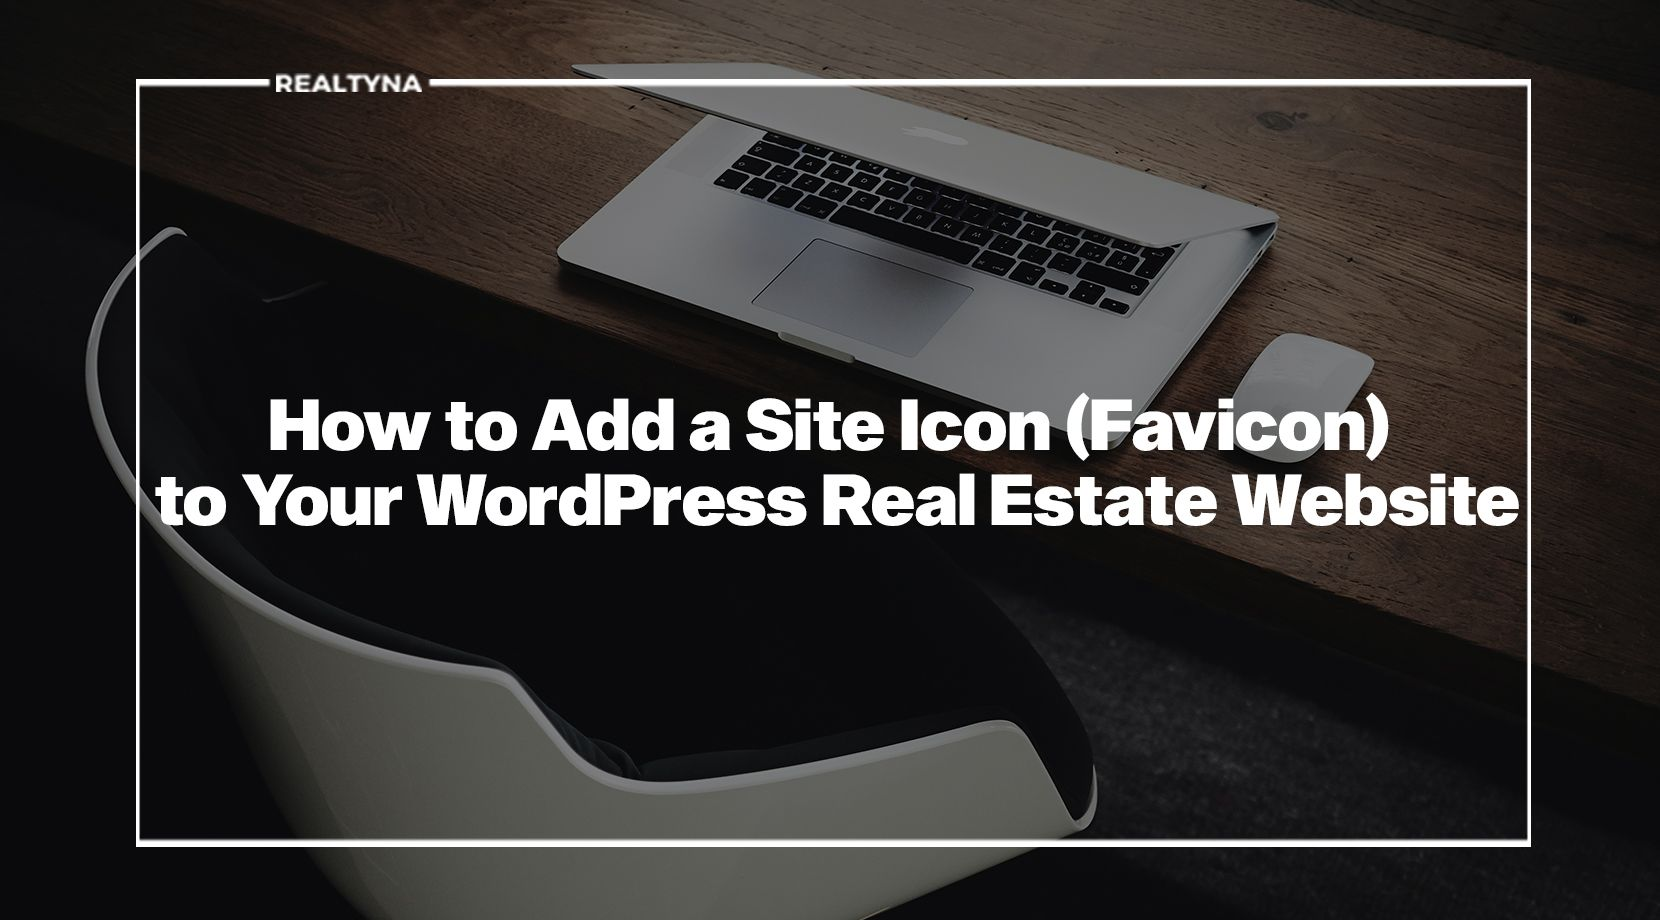 How to Add a Site Icon (Favicon) to Your WordPress Real Estate Website